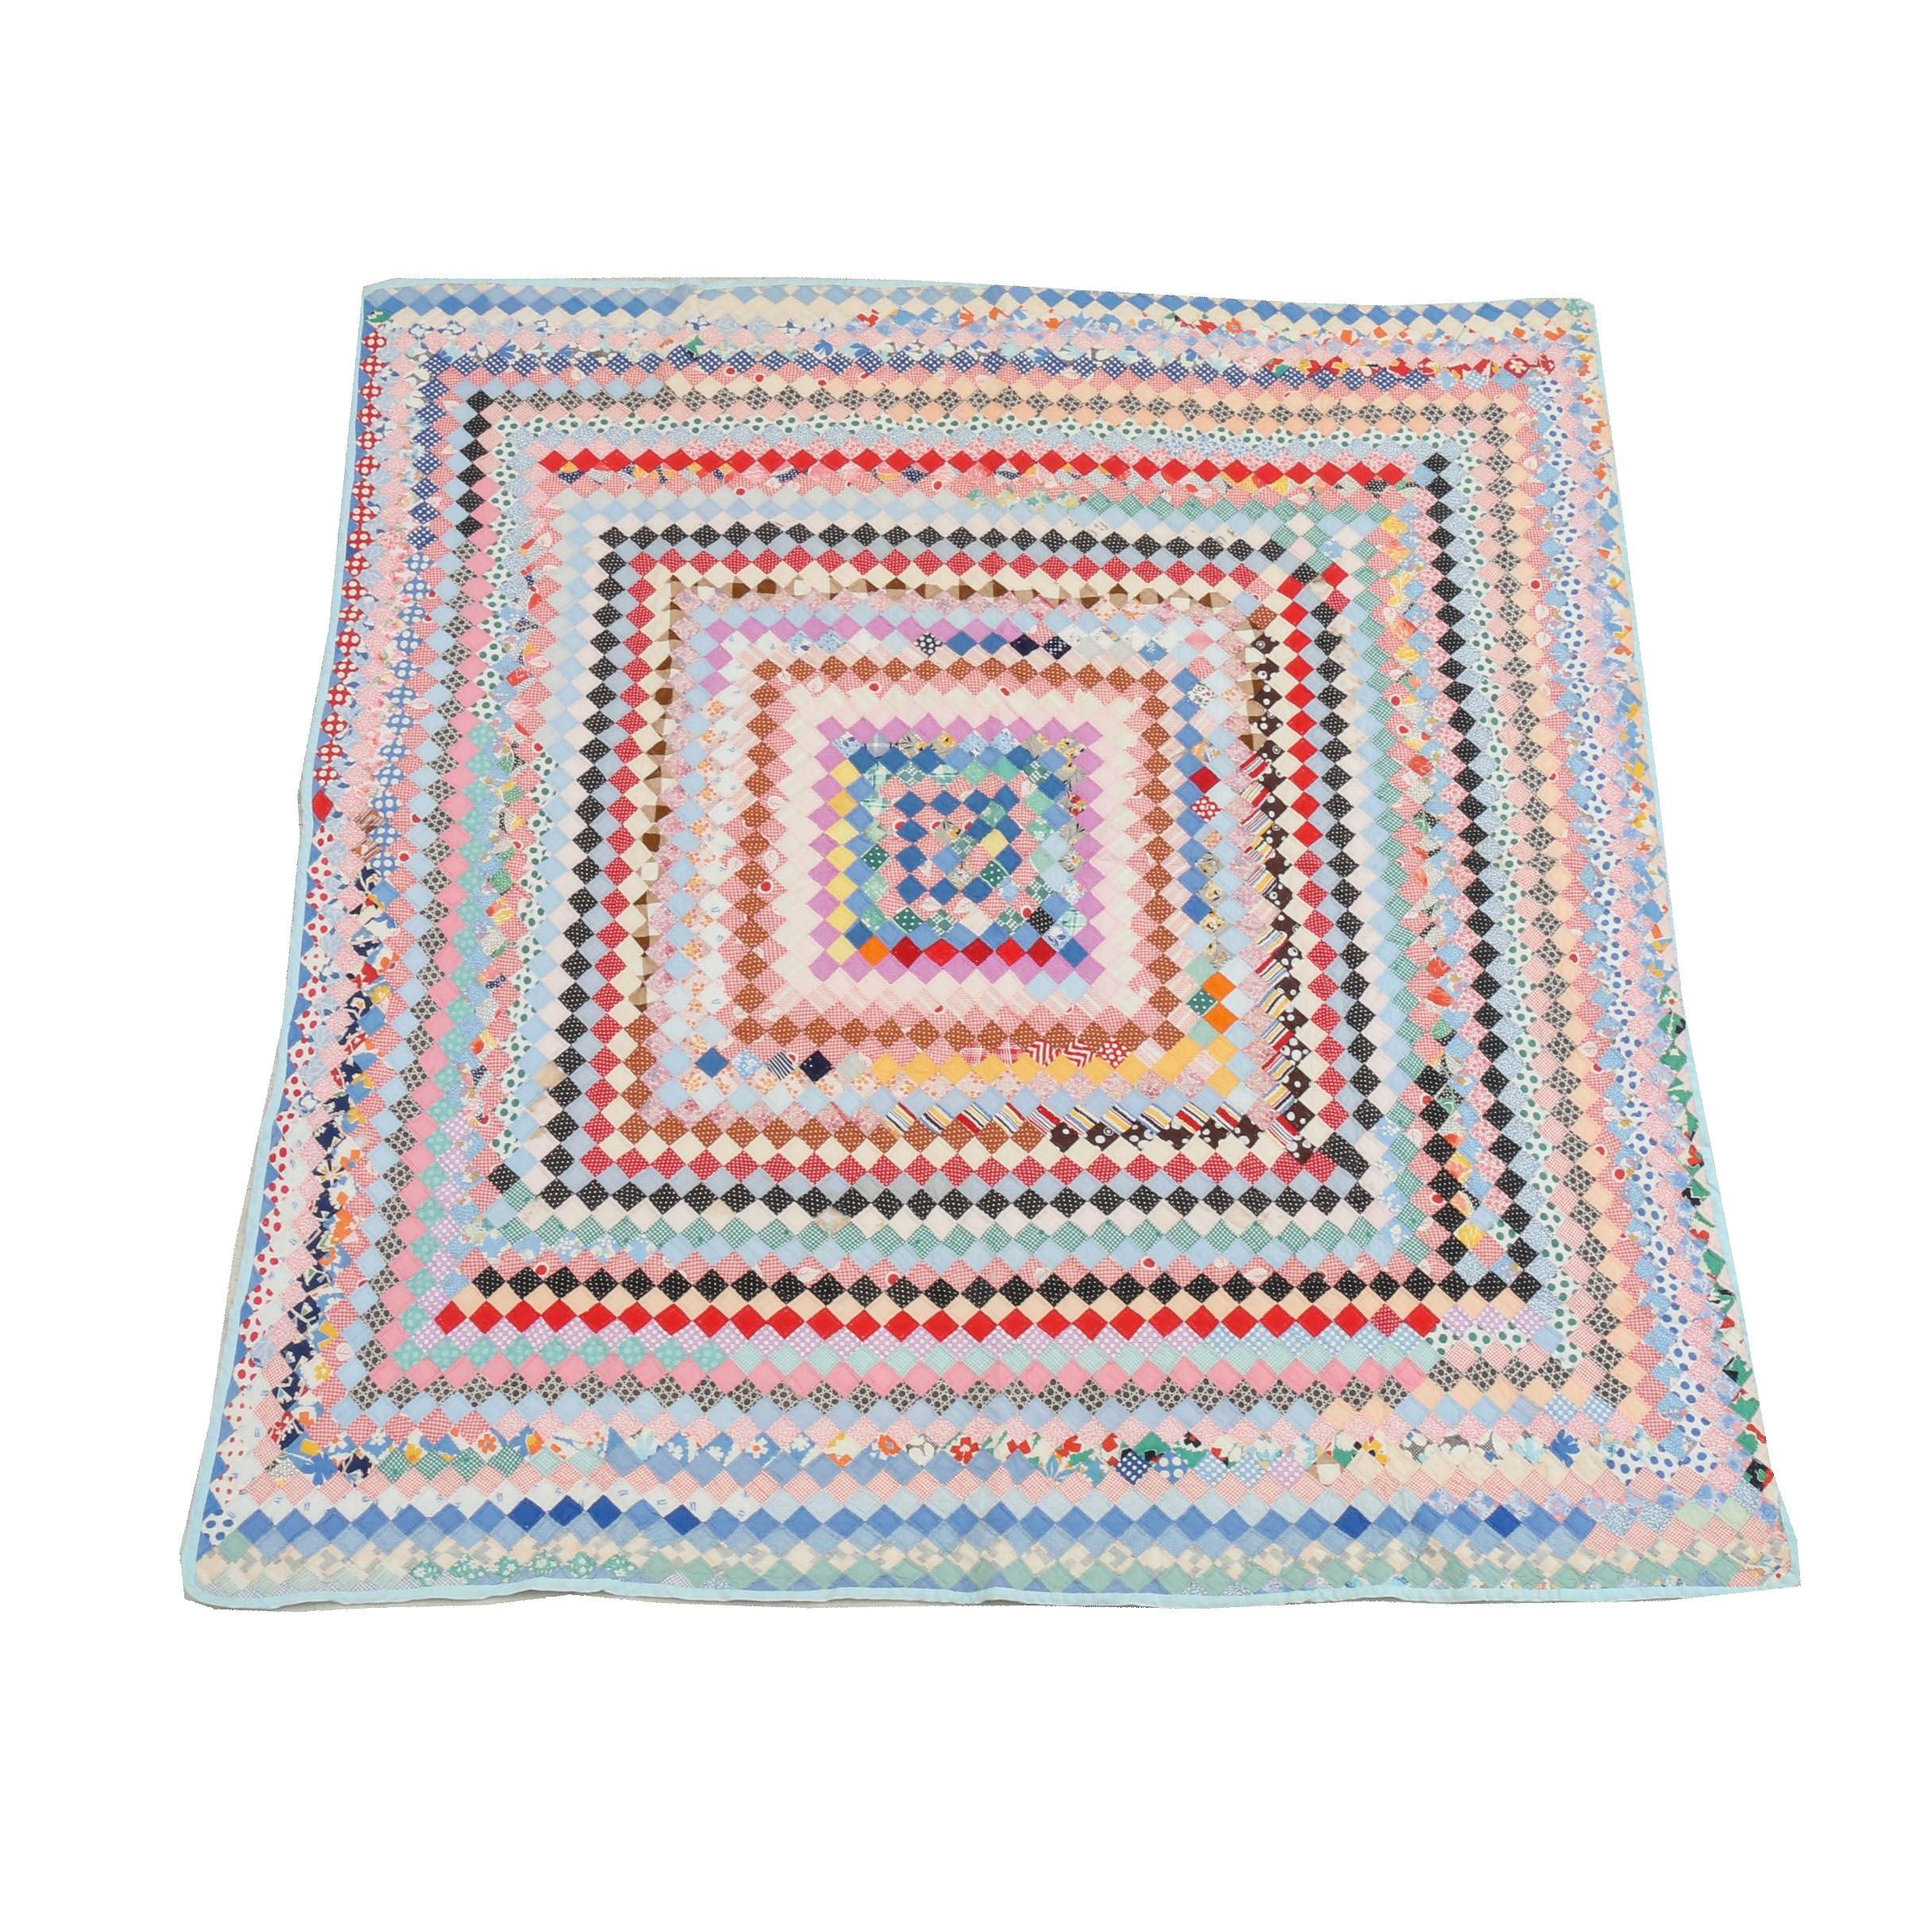 """Handcrafted """"Small Diamond"""" Block Quilt"""